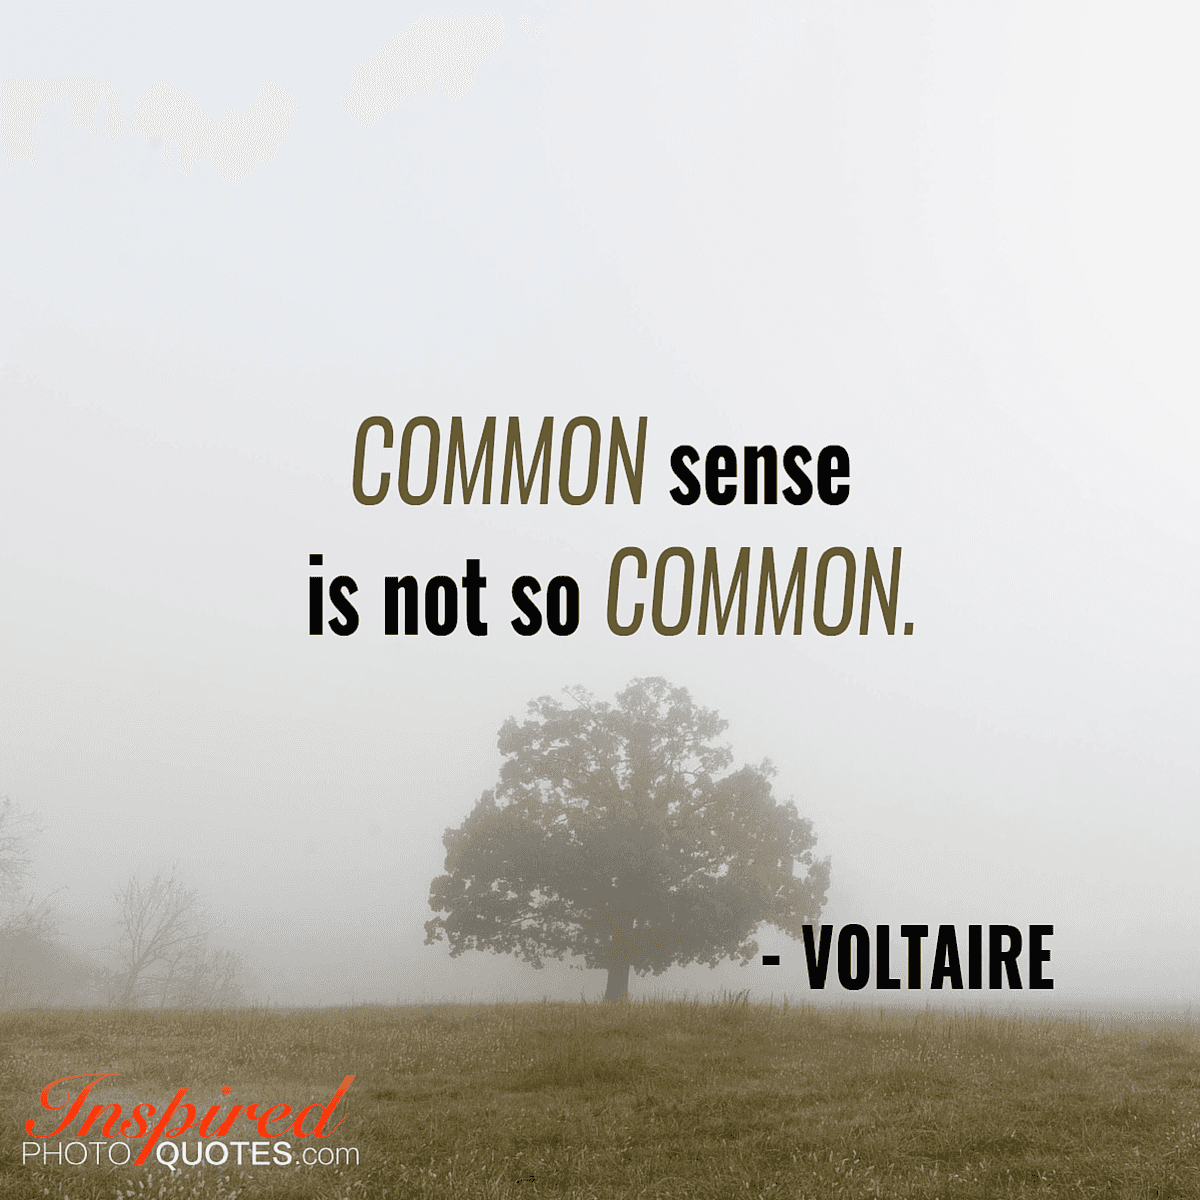 "Quotes Voltaire Common Sense Is Not So Common.""  Voltaire  Inspiring Photo"